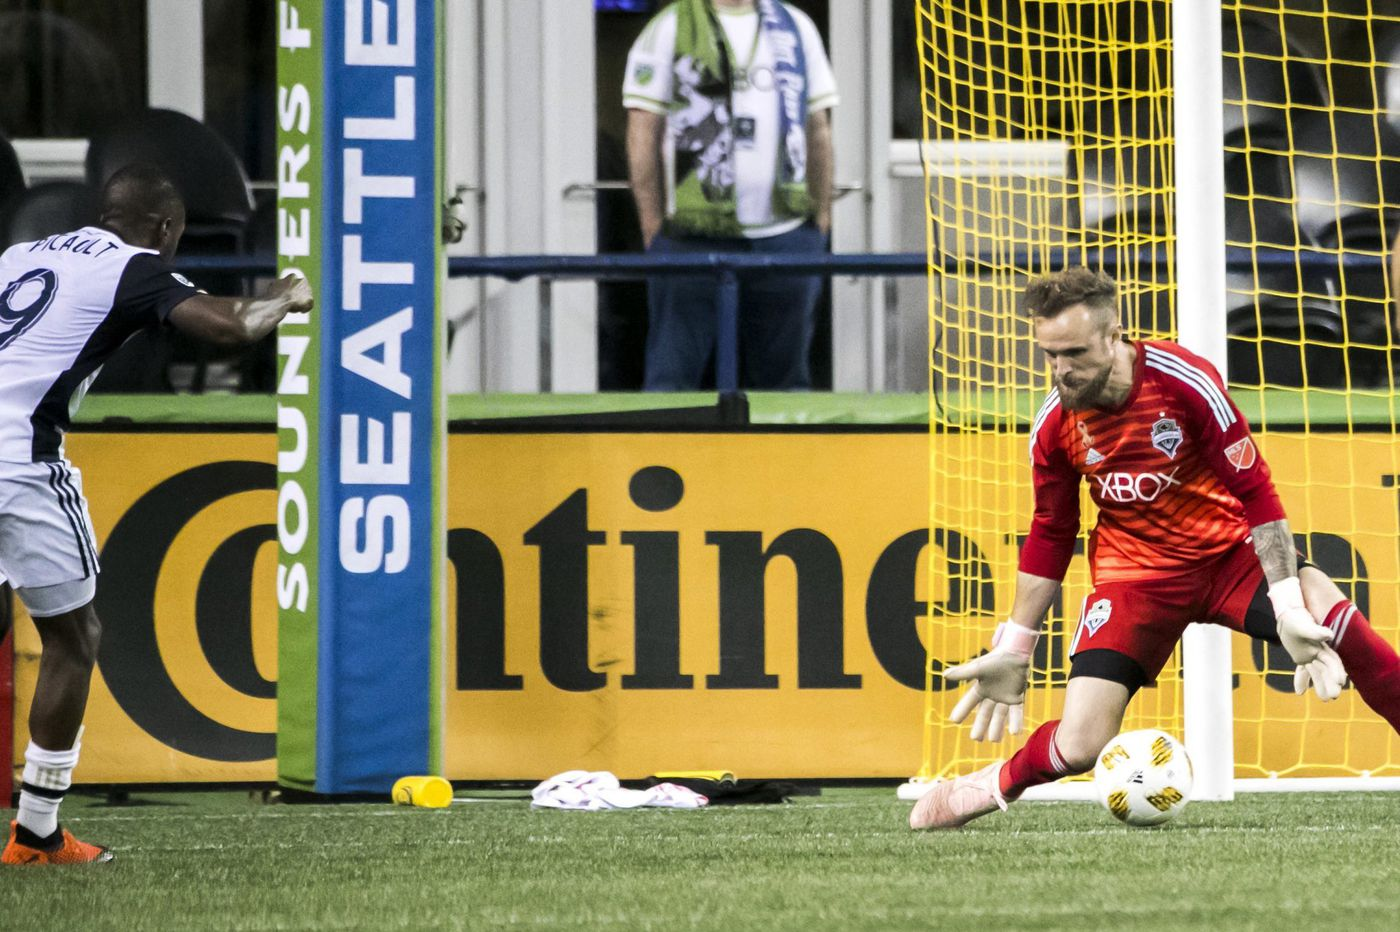 Union beat dominant Sounders behind Fafa Picault's clutch goal